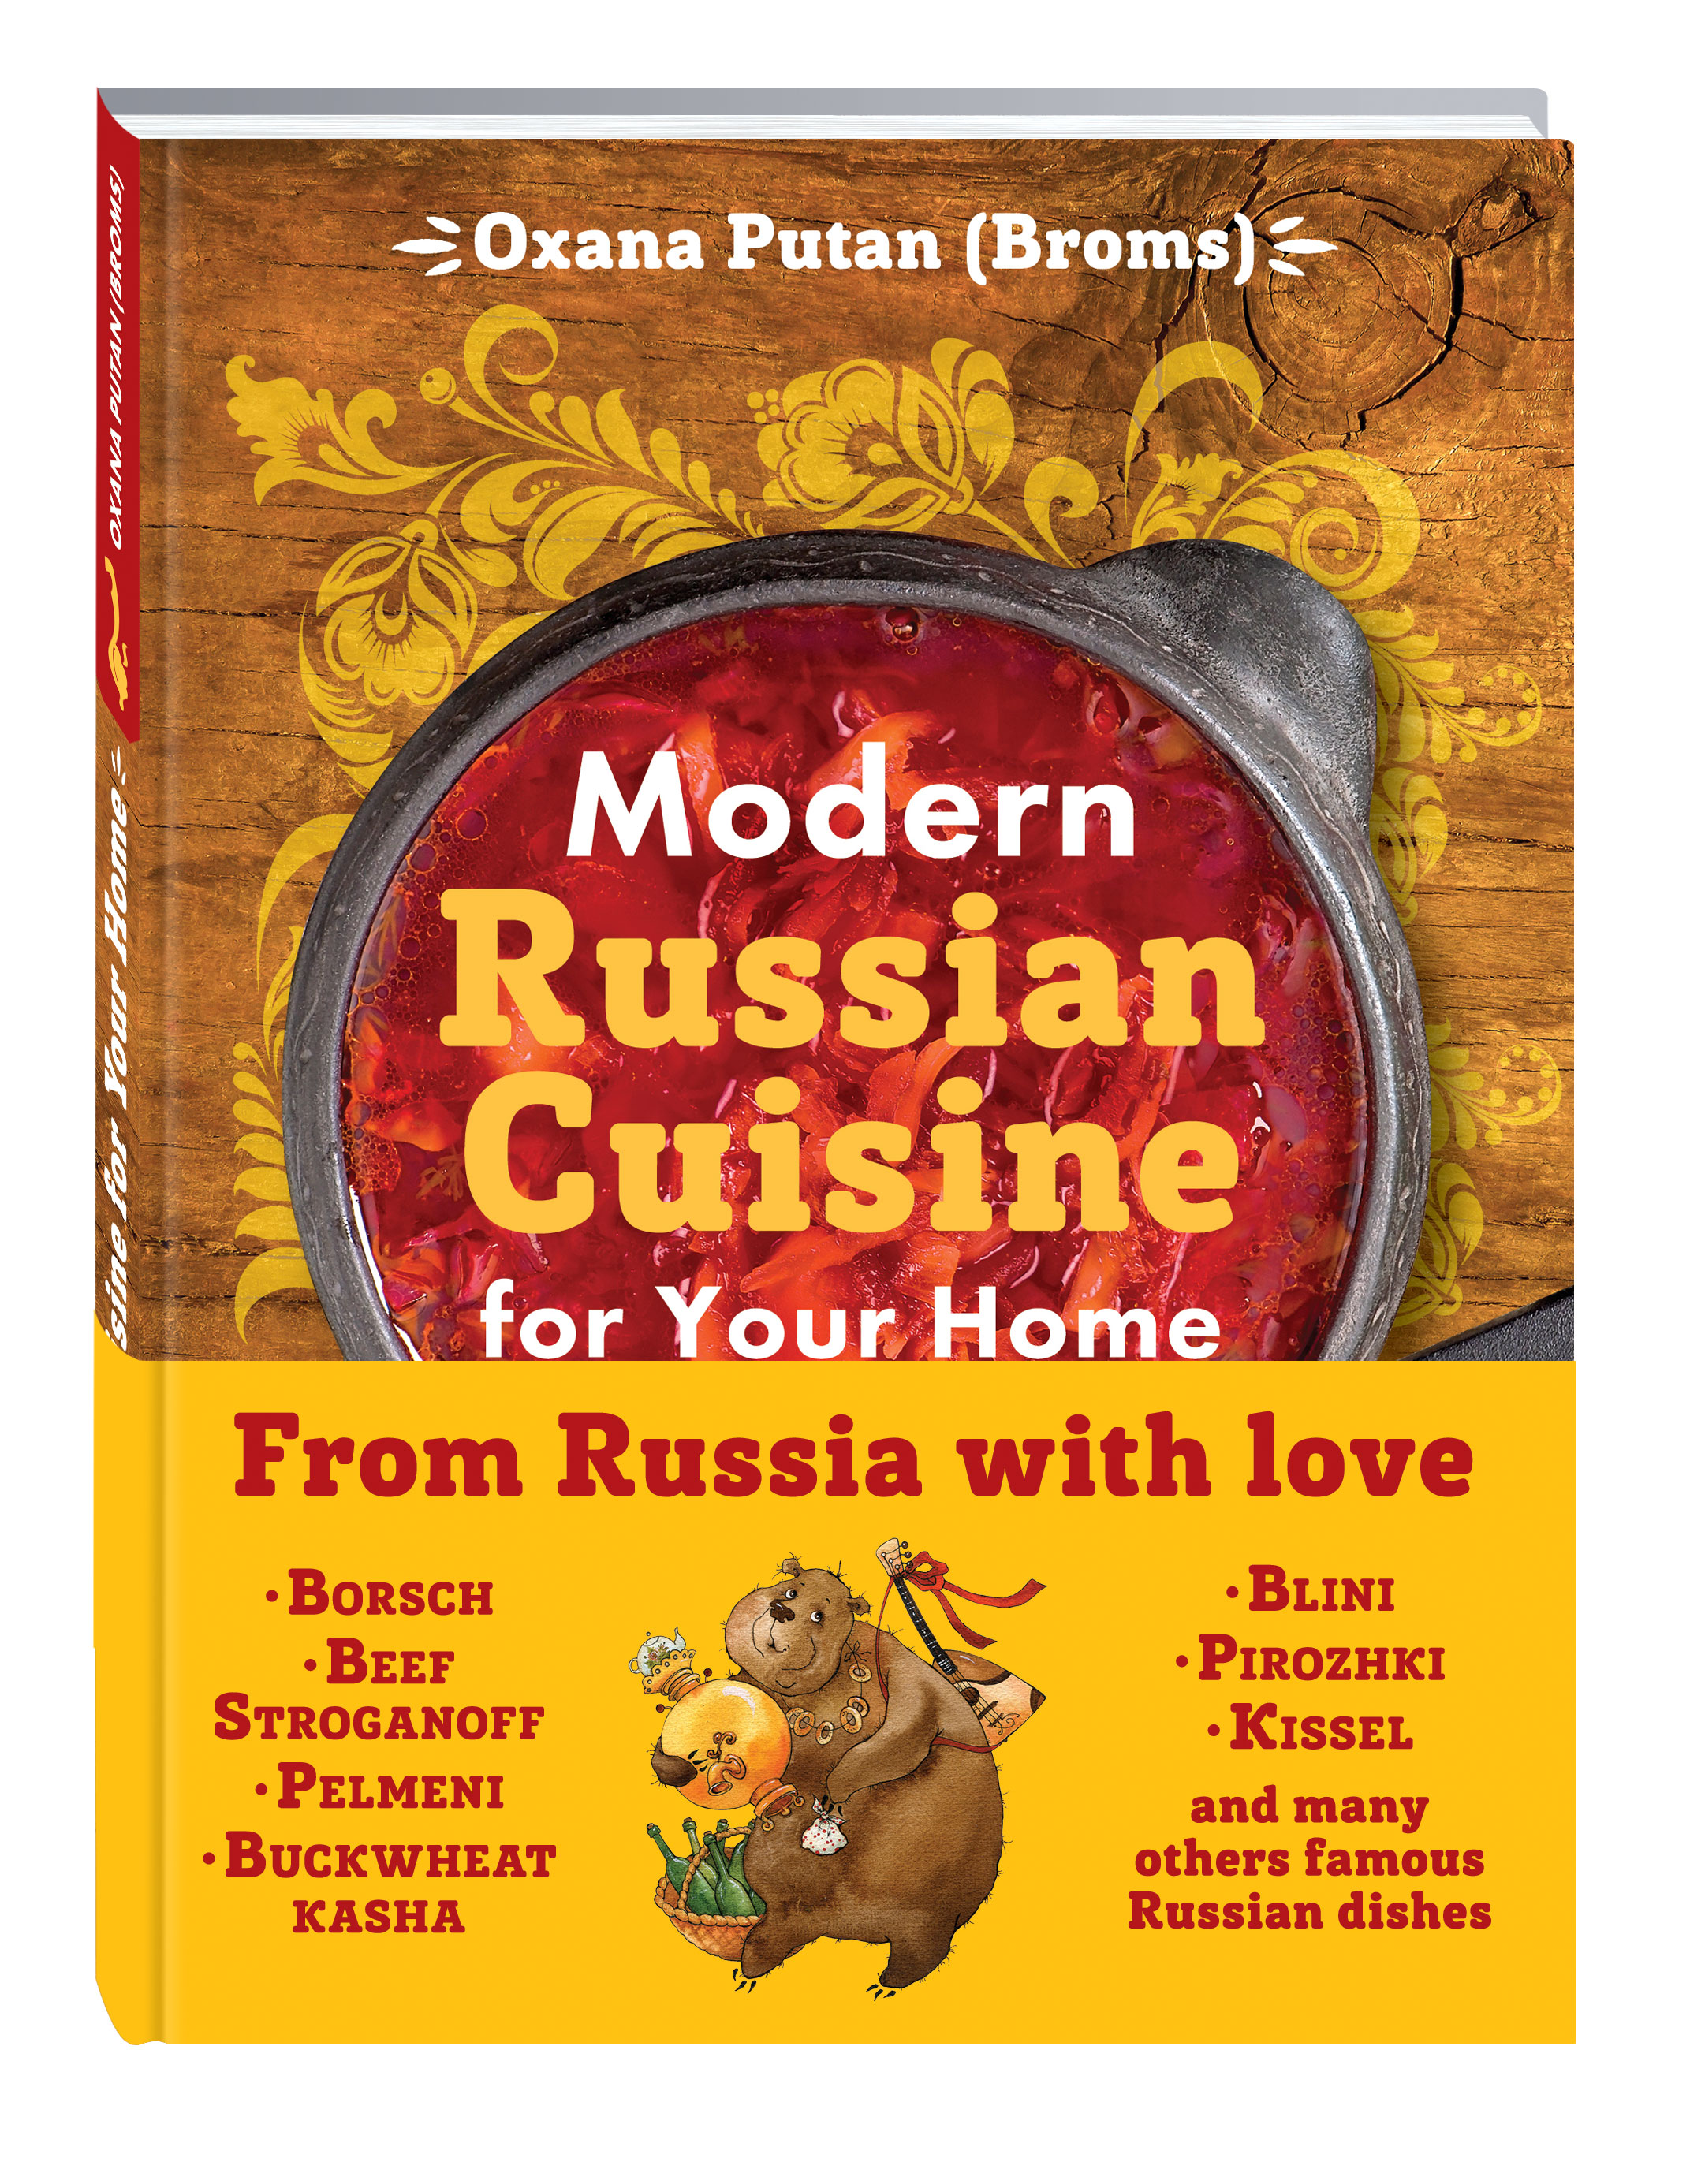 Oxana Putan Modern Russian Cuisine for Your Home culinary calculations